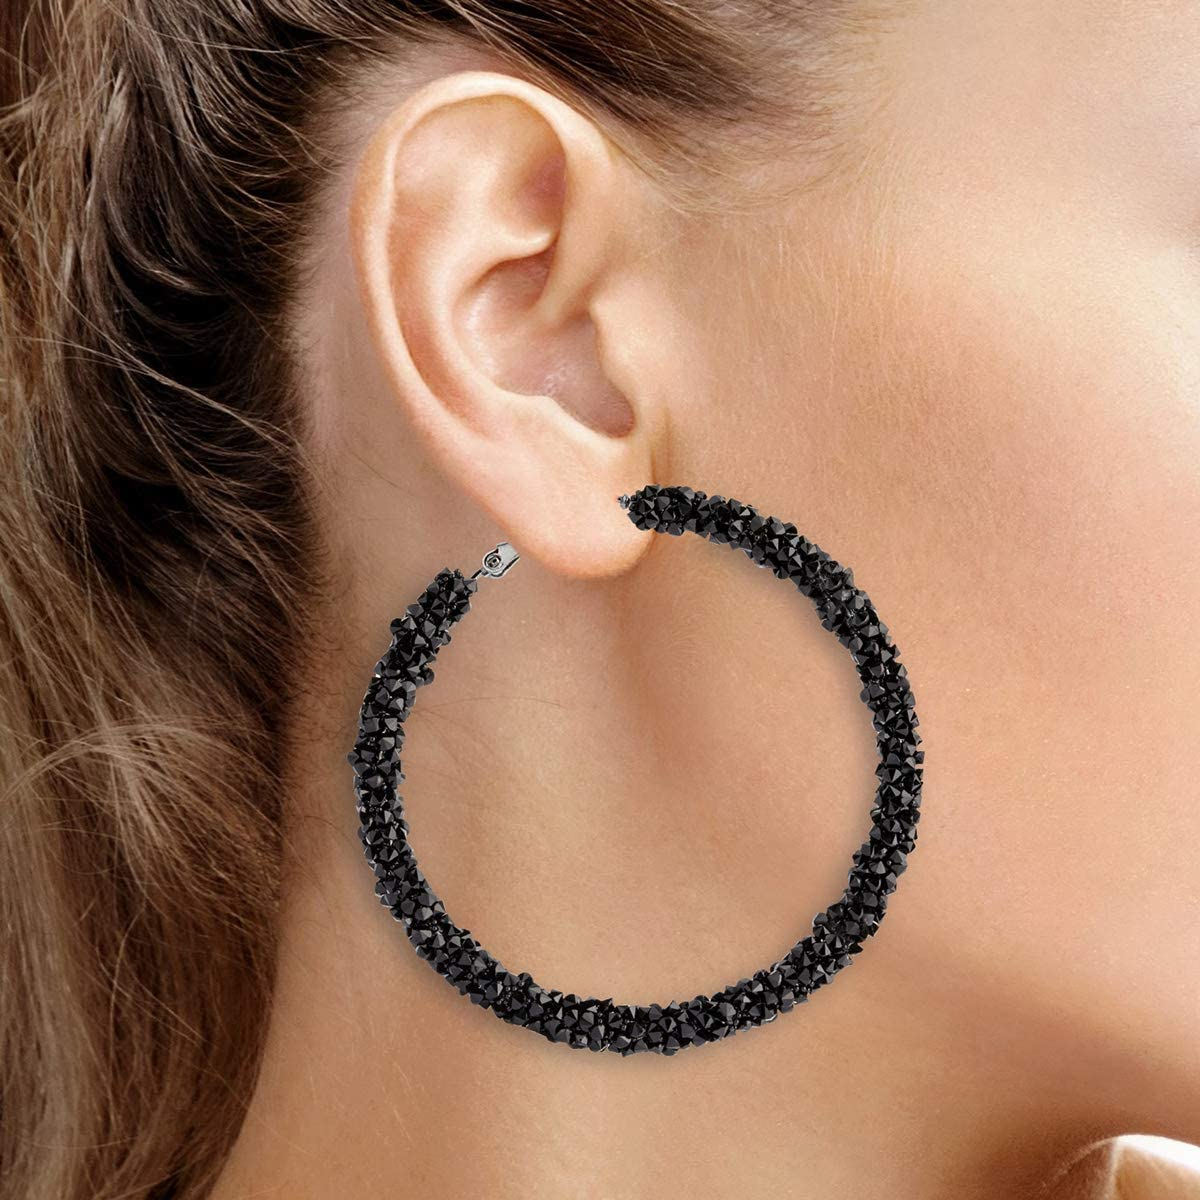 Crystal Hoop Earrings Une Douce 2 Pairs Rhinestone Hoop Earrings for Women Big and Small Hoop Earrings with Gift Box for Women and Girls